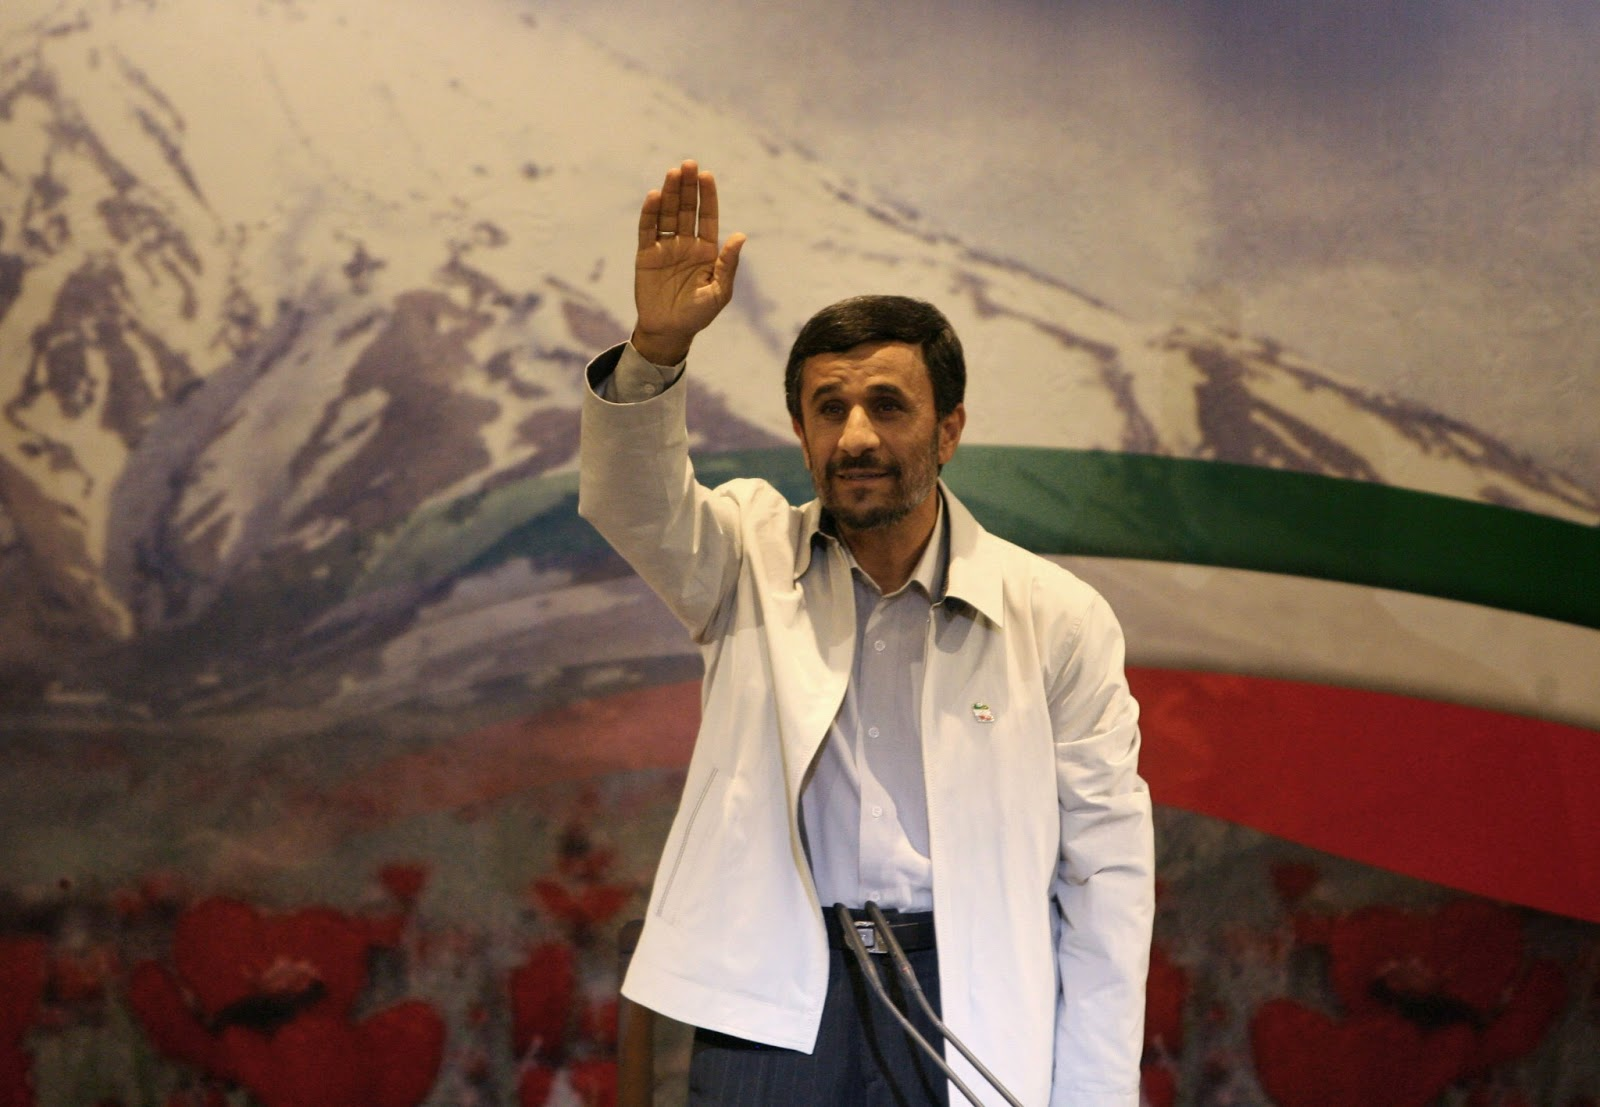 http://3.bp.blogspot.com/-dCI5skD3Ej4/UPAFKSvjAyI/AAAAAAAAD28/xJhun-UY174/s1600/Ahmadinejad-in-front+of+the+world+fine+hd+wallpaper.jpg